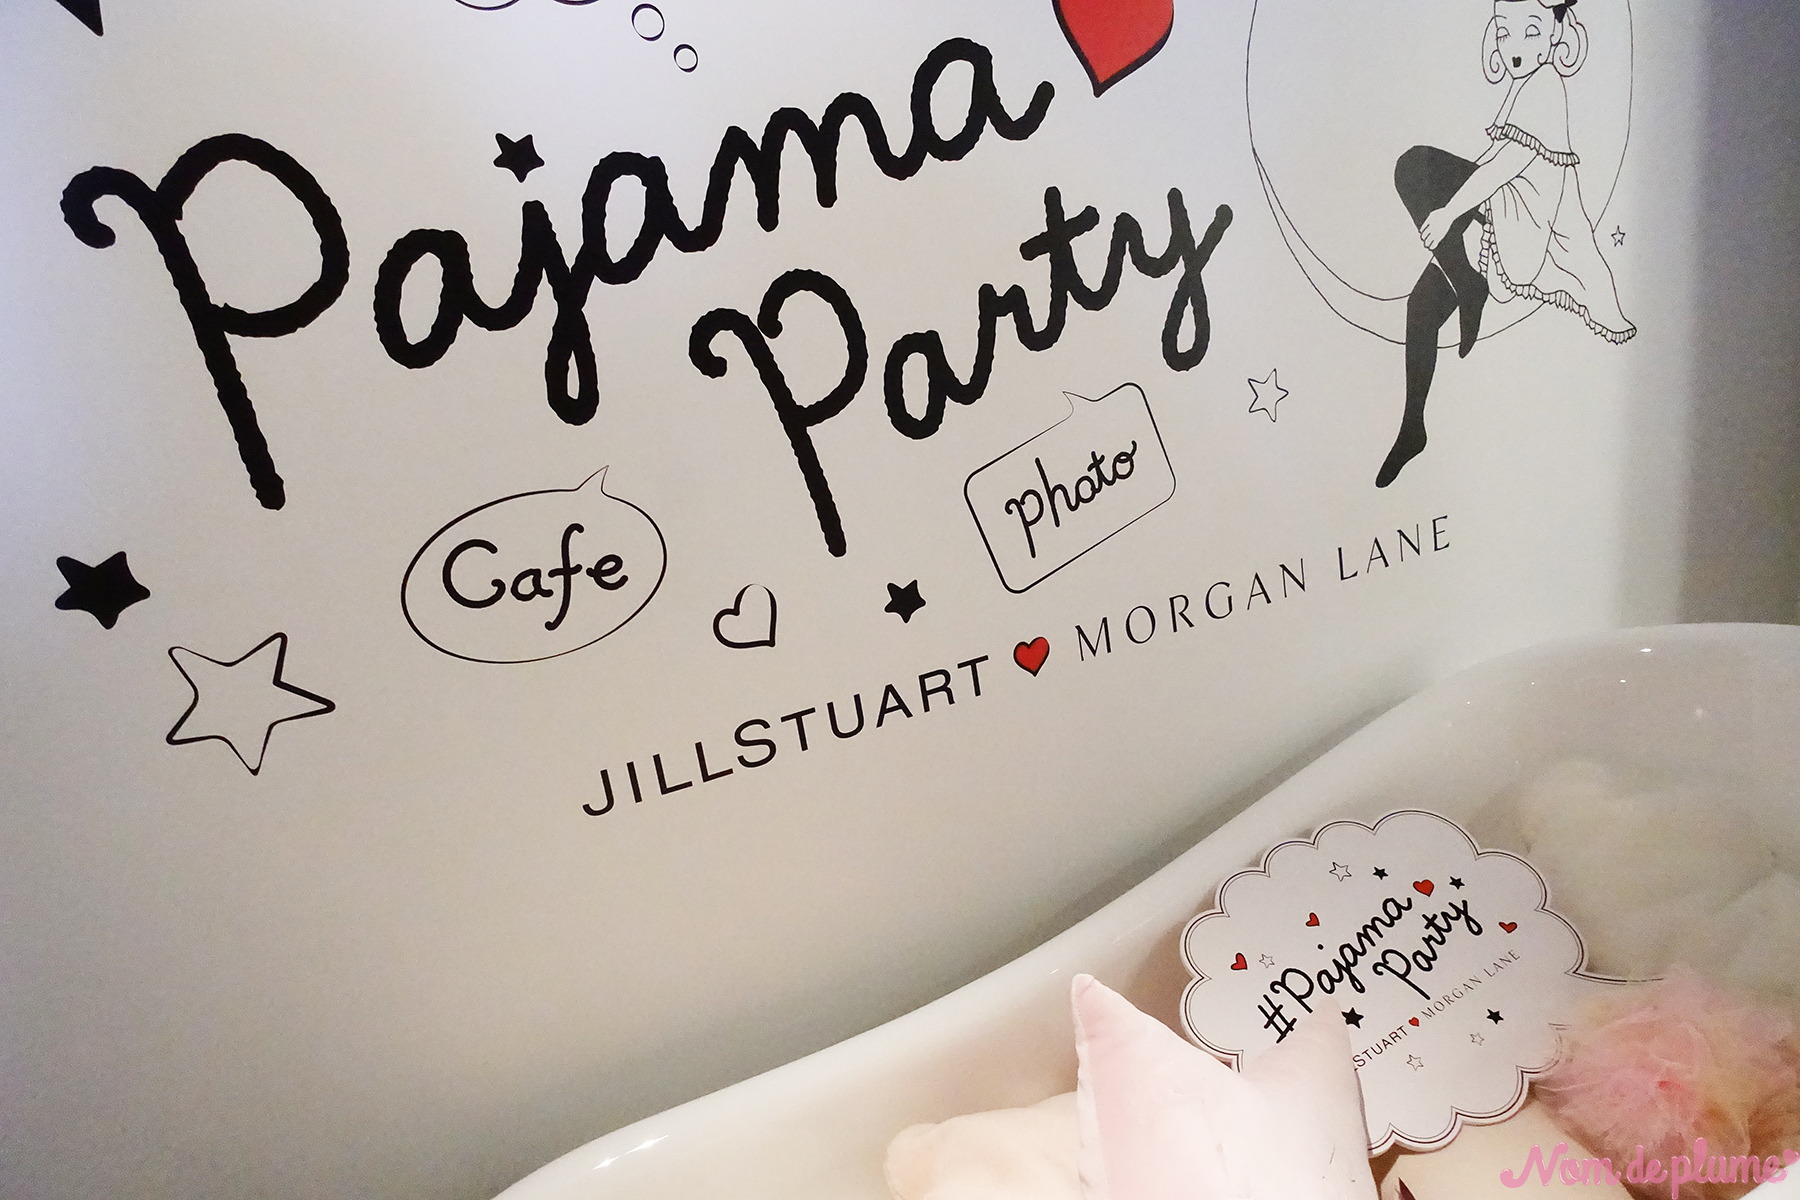 JILL STUART × MORGAN LANE 〜pajama party〜3日間限定オープン🎉